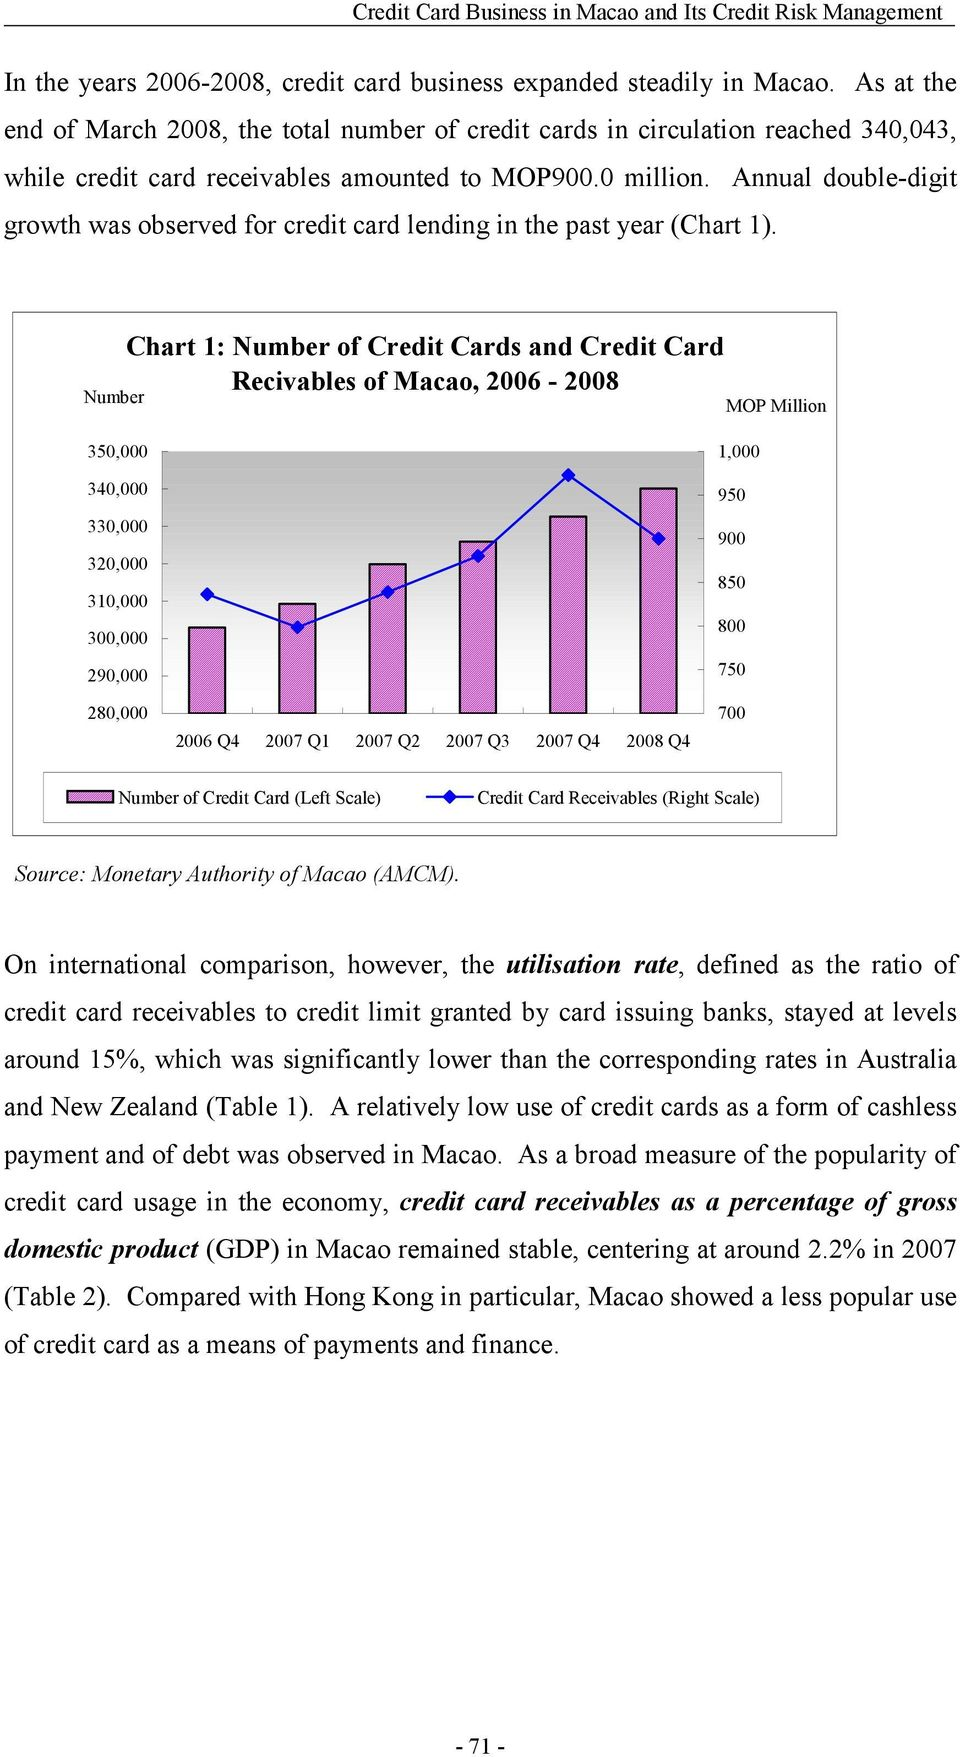 Annual double-digit growth was observed for credit card lending in the past year (Chart 1).